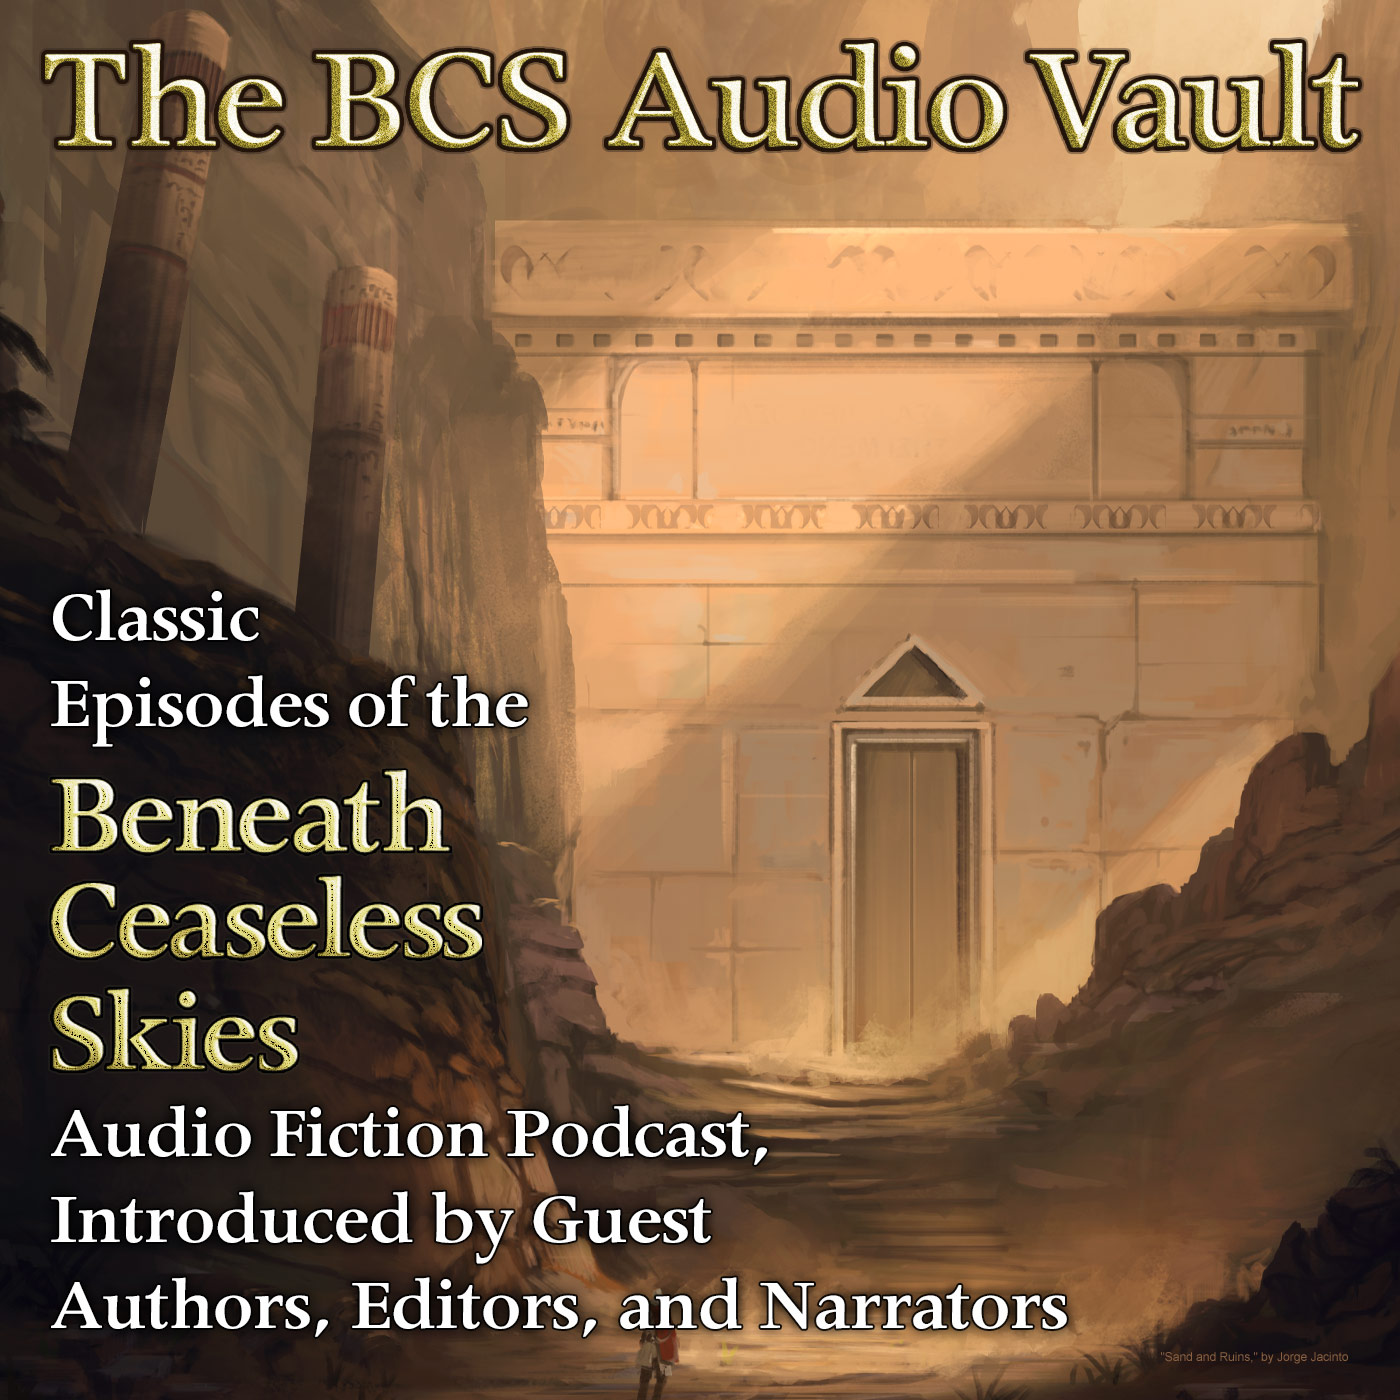 The BCS Audio Vault